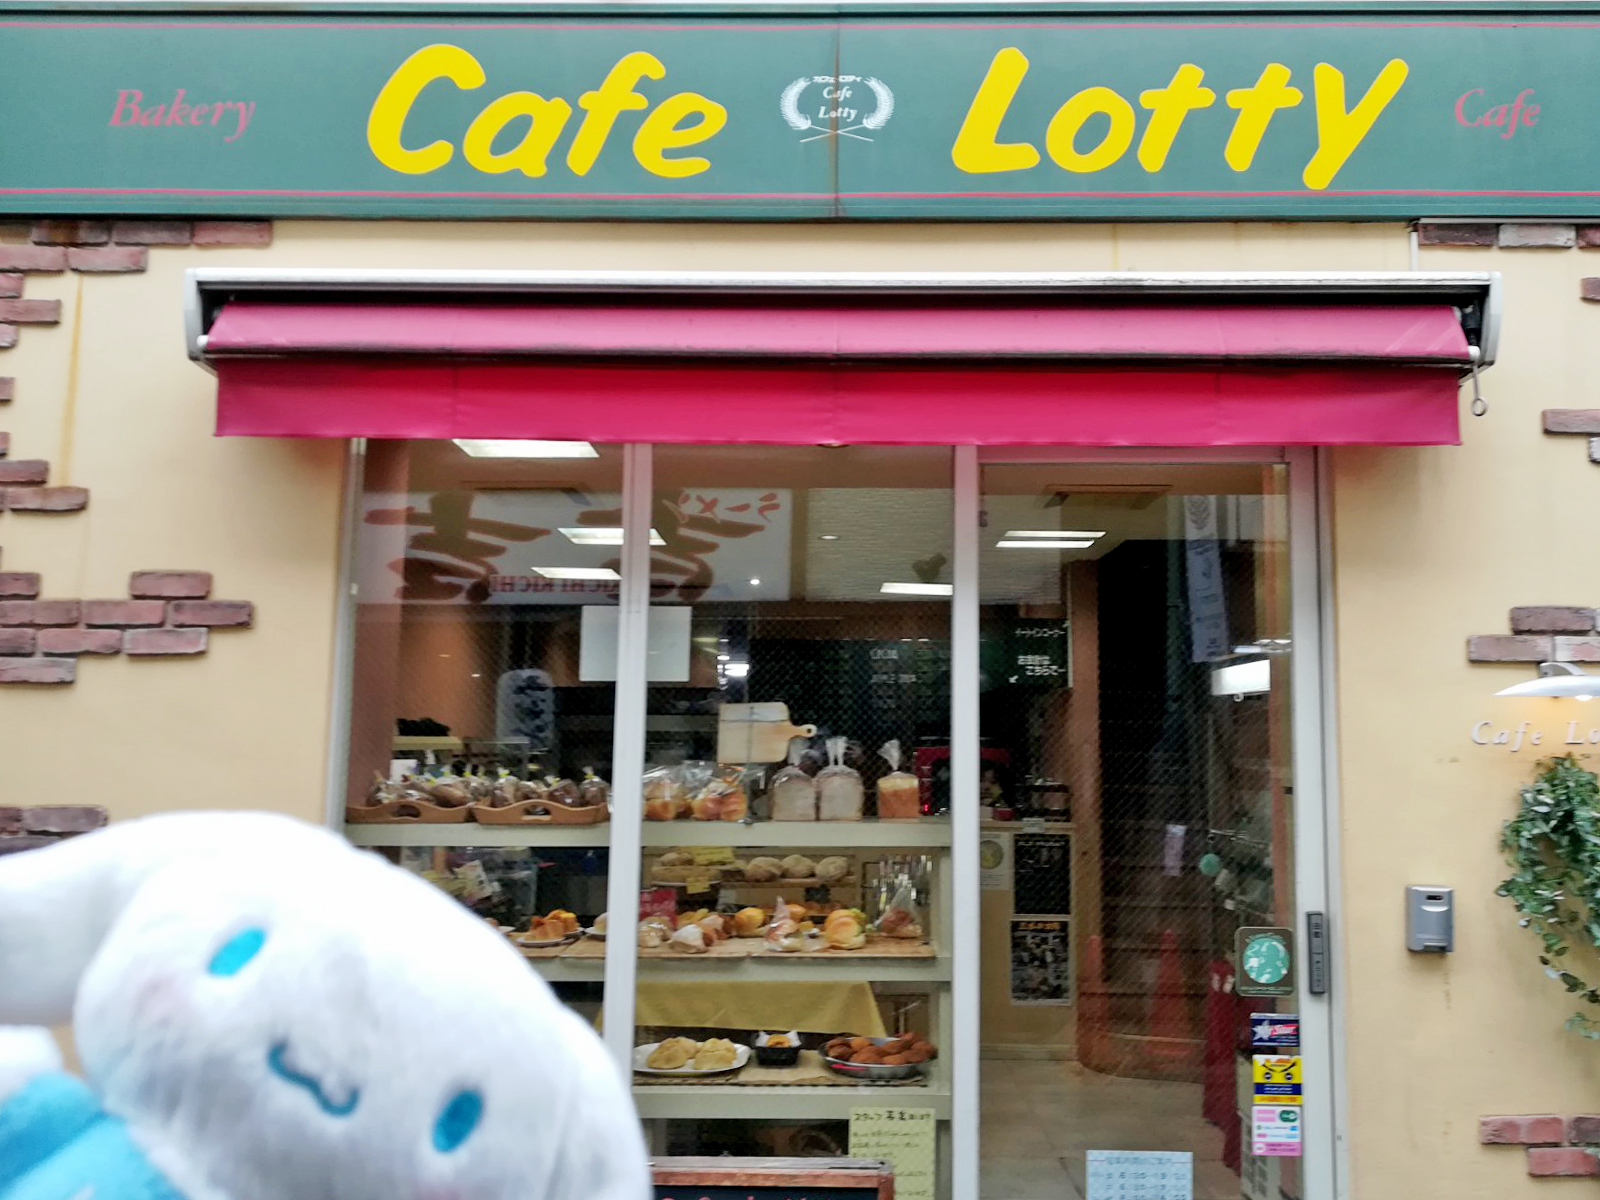 Cafe Lotty(カフェ ロティ)